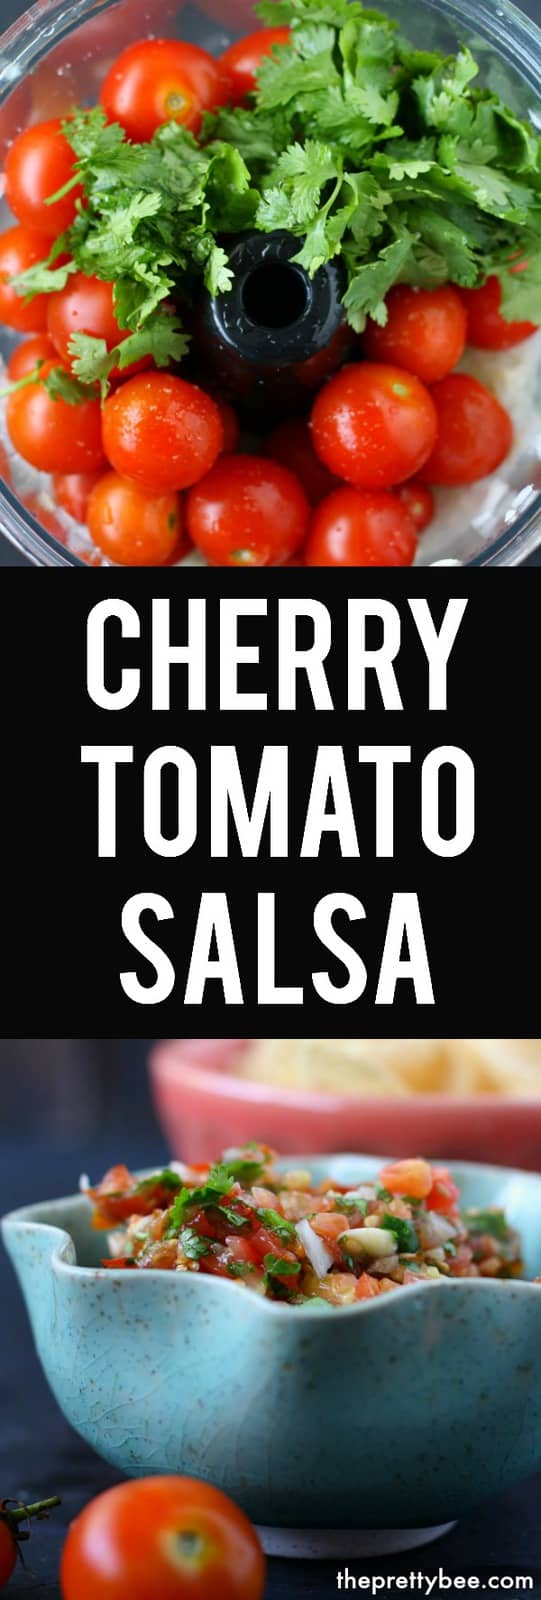 Plush Canning This Easy Cherry Tomato Salsa Is Way To Use Up Your Easy Cherry Tomato Bee Roasted Cherry Tomato Salsa Cherry Tomato Salsa nice food Cherry Tomato Salsa